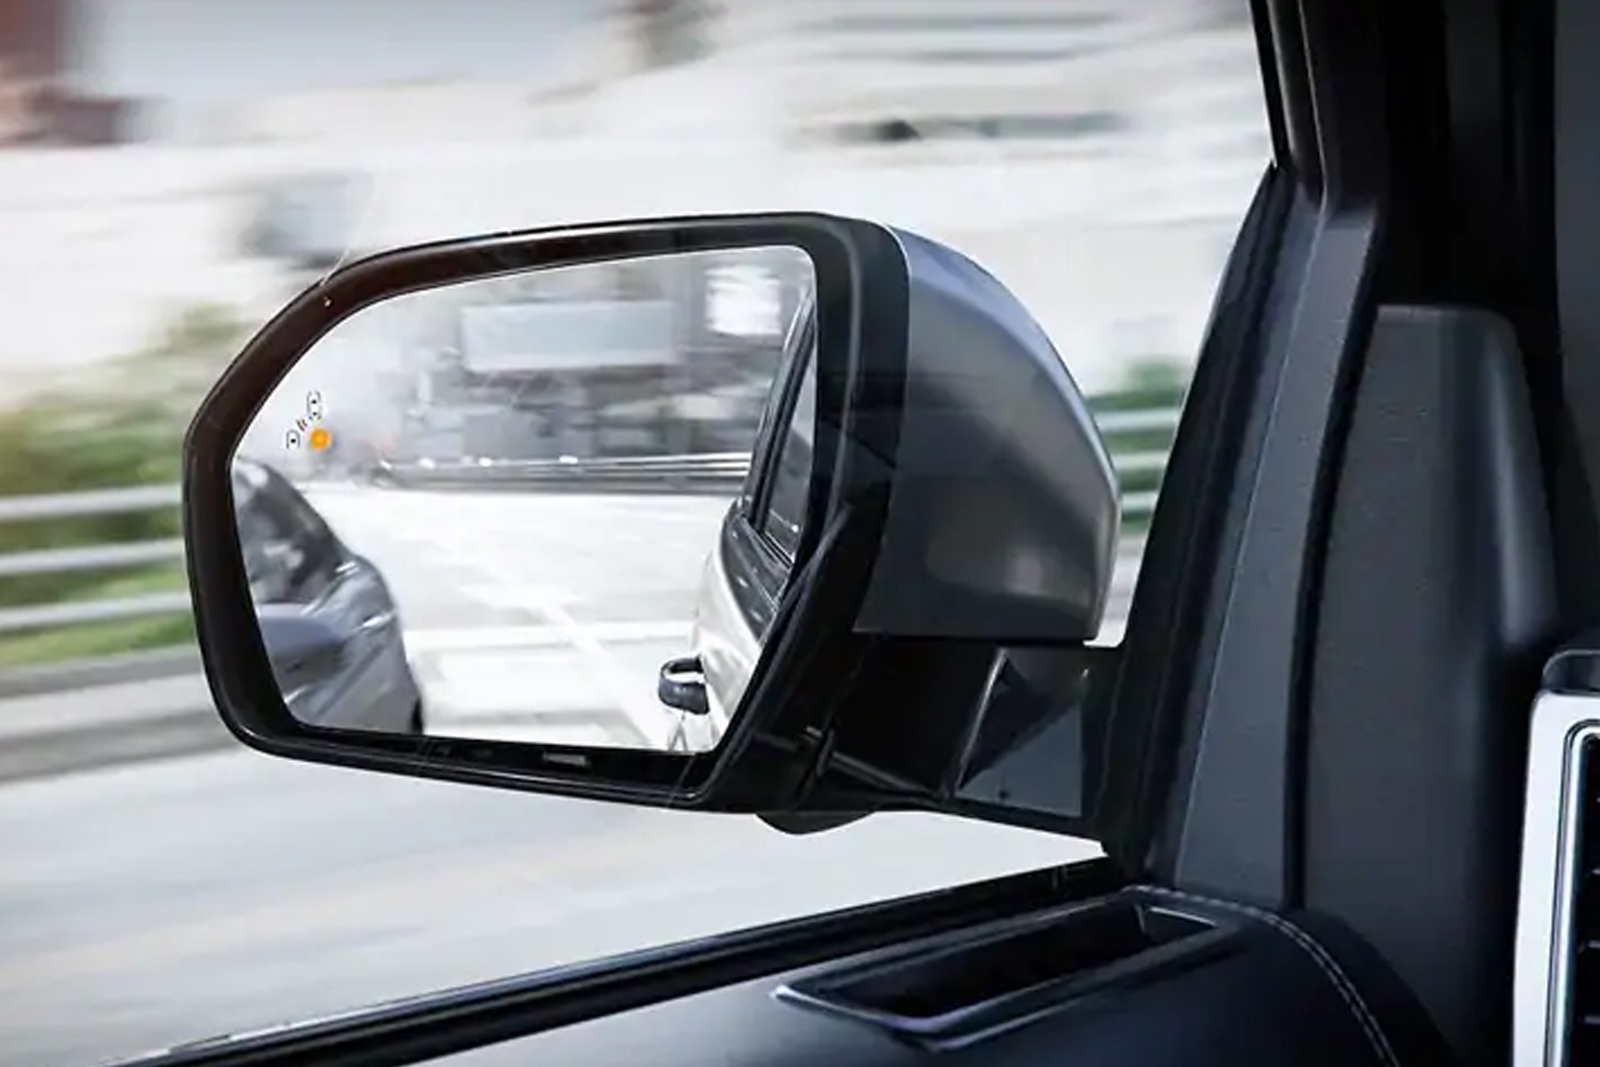 blind spot information system with cross-traffic alert on sideview mirror